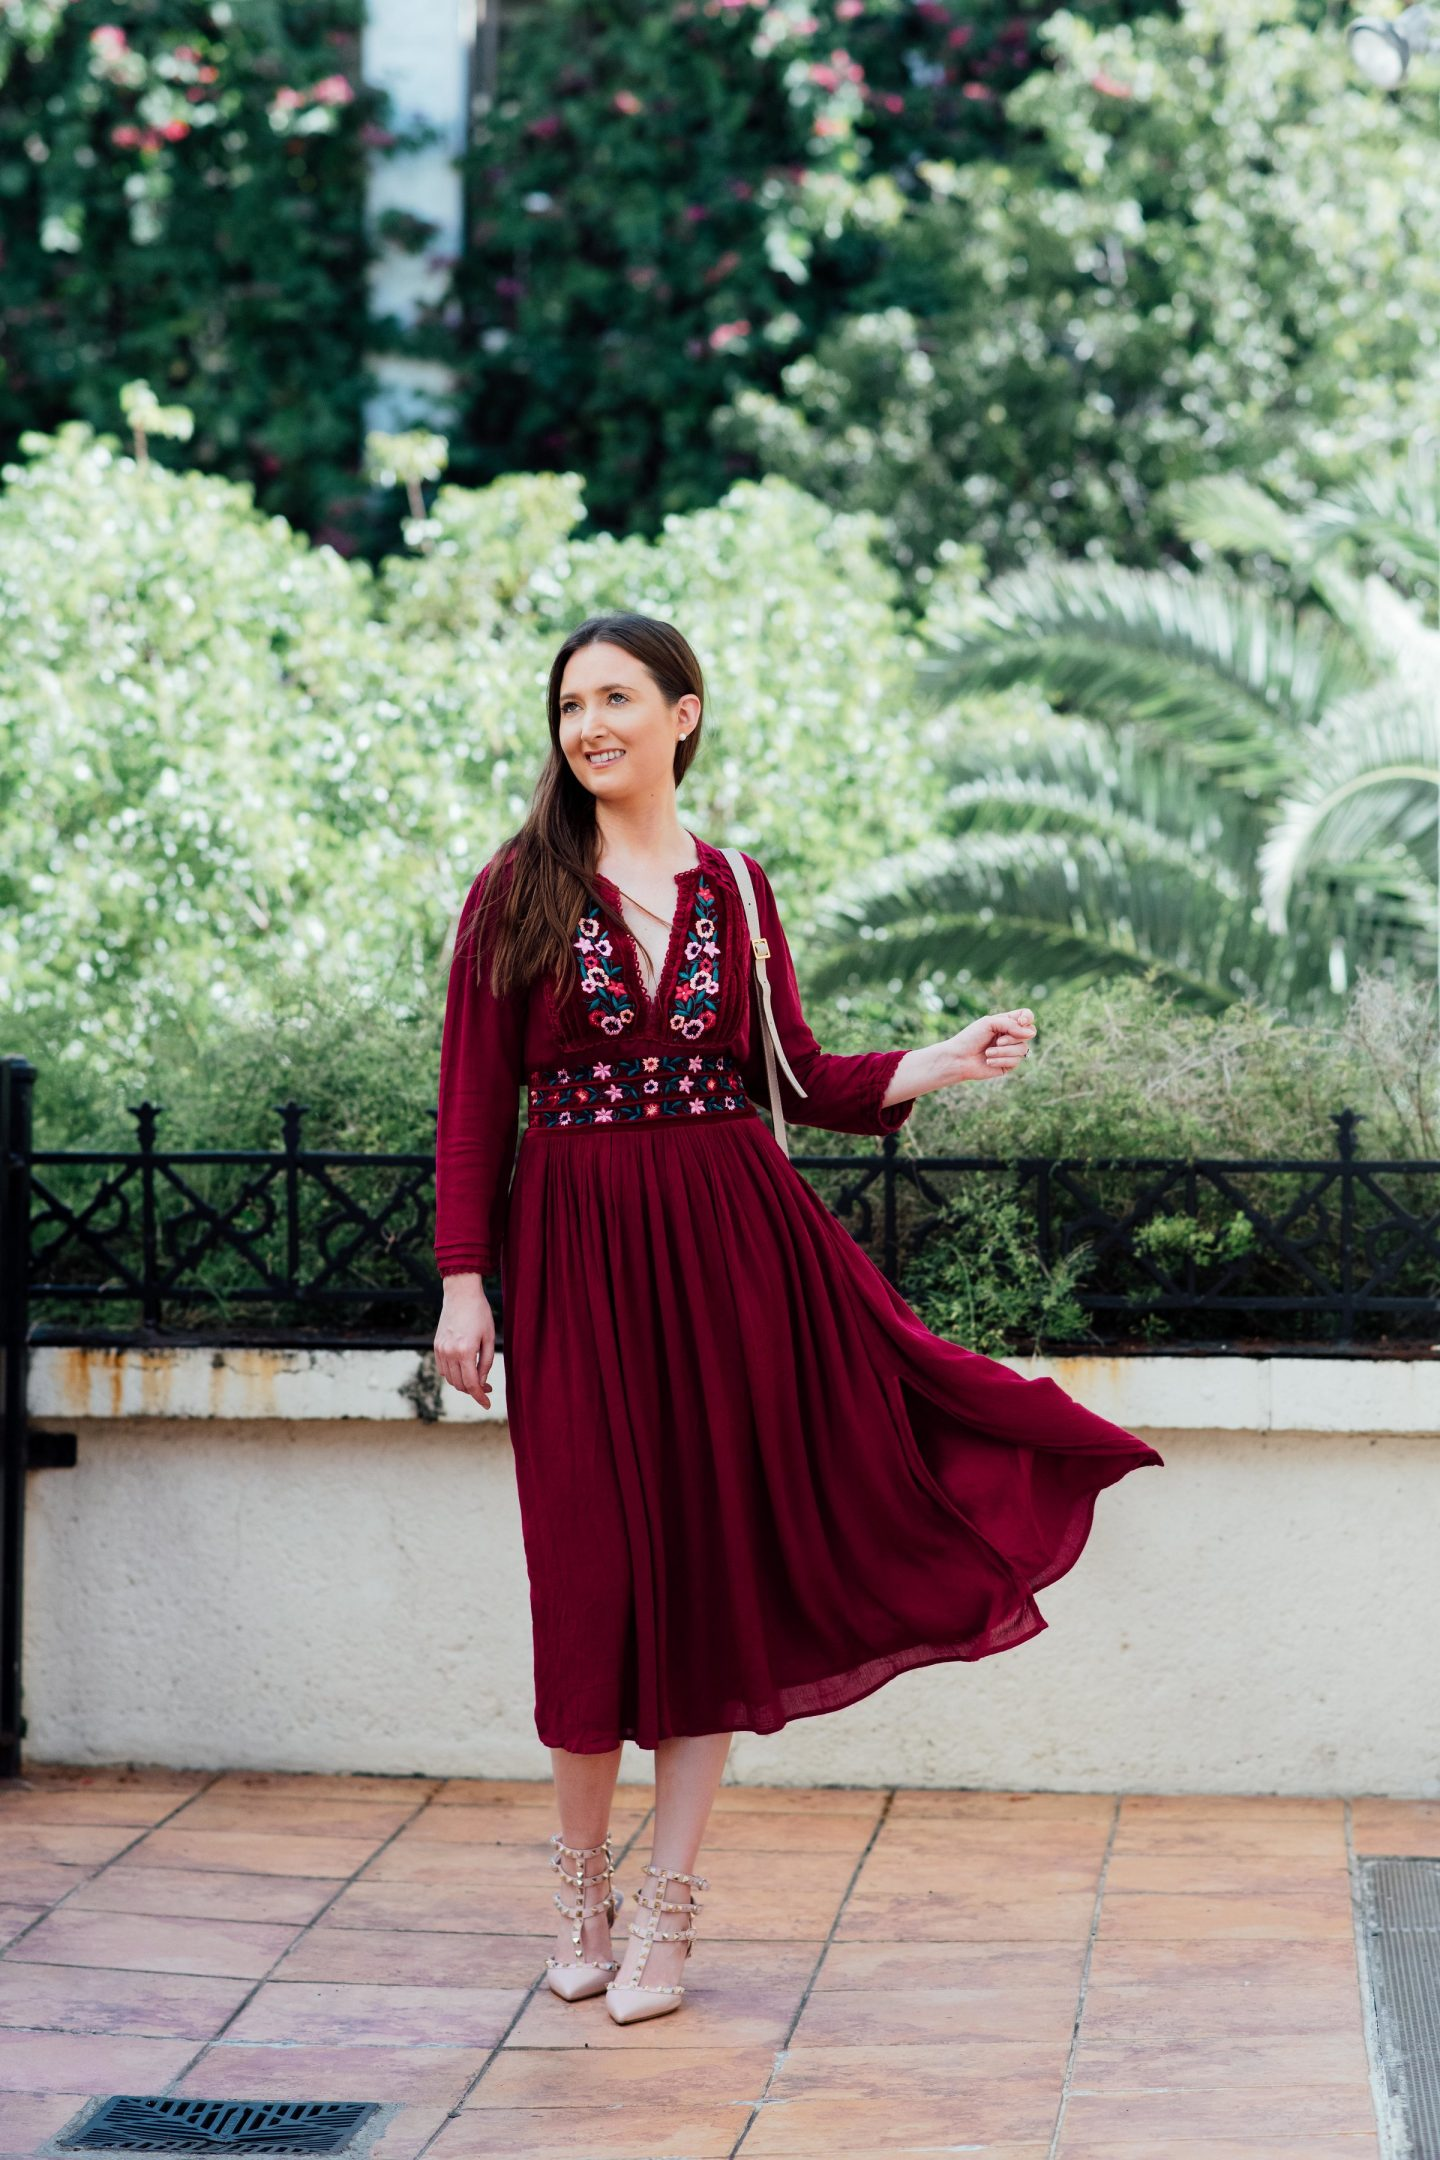 My honest thoughts on living in Miami, Free people flora midi dress, Chloe Marcie mini, Valentino rockstuds kitten heels, pink Valentino rockstuds, free people velvet dress, romantic dress, mid length dress, free people floral midi dress